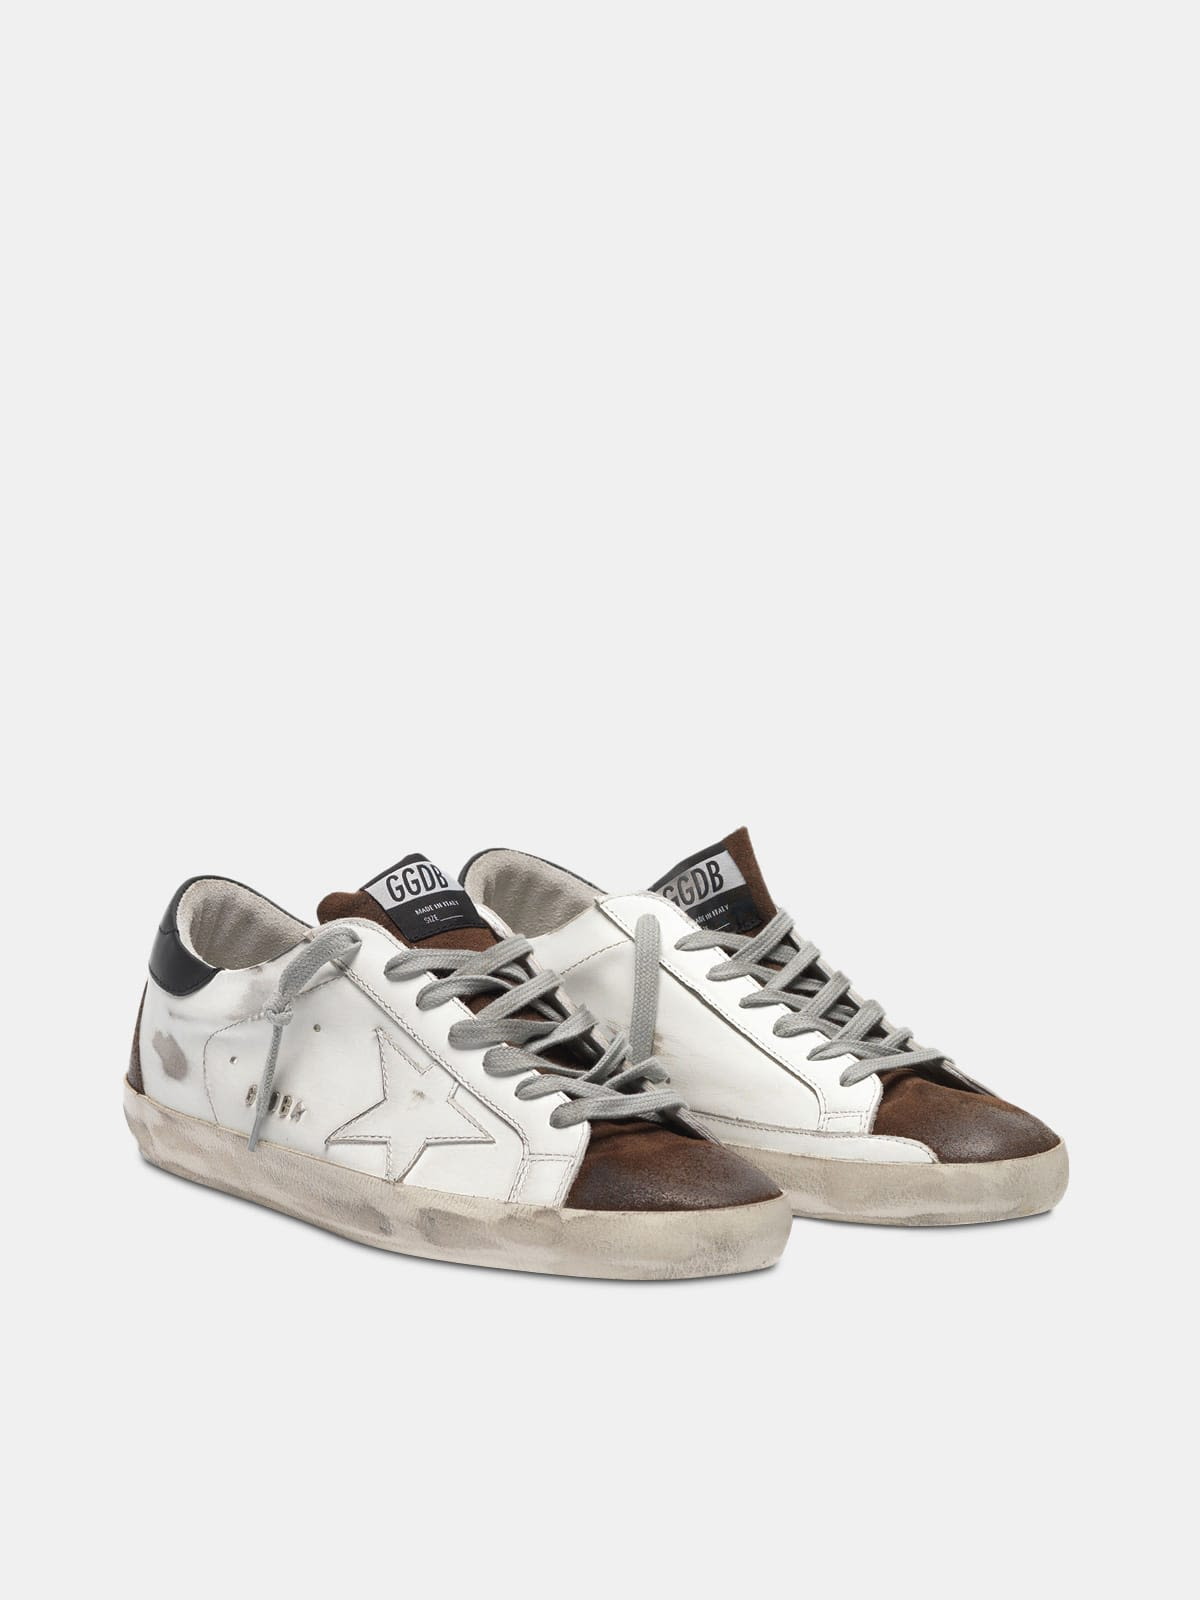 Two-tone white and brown Super-Star sneakers